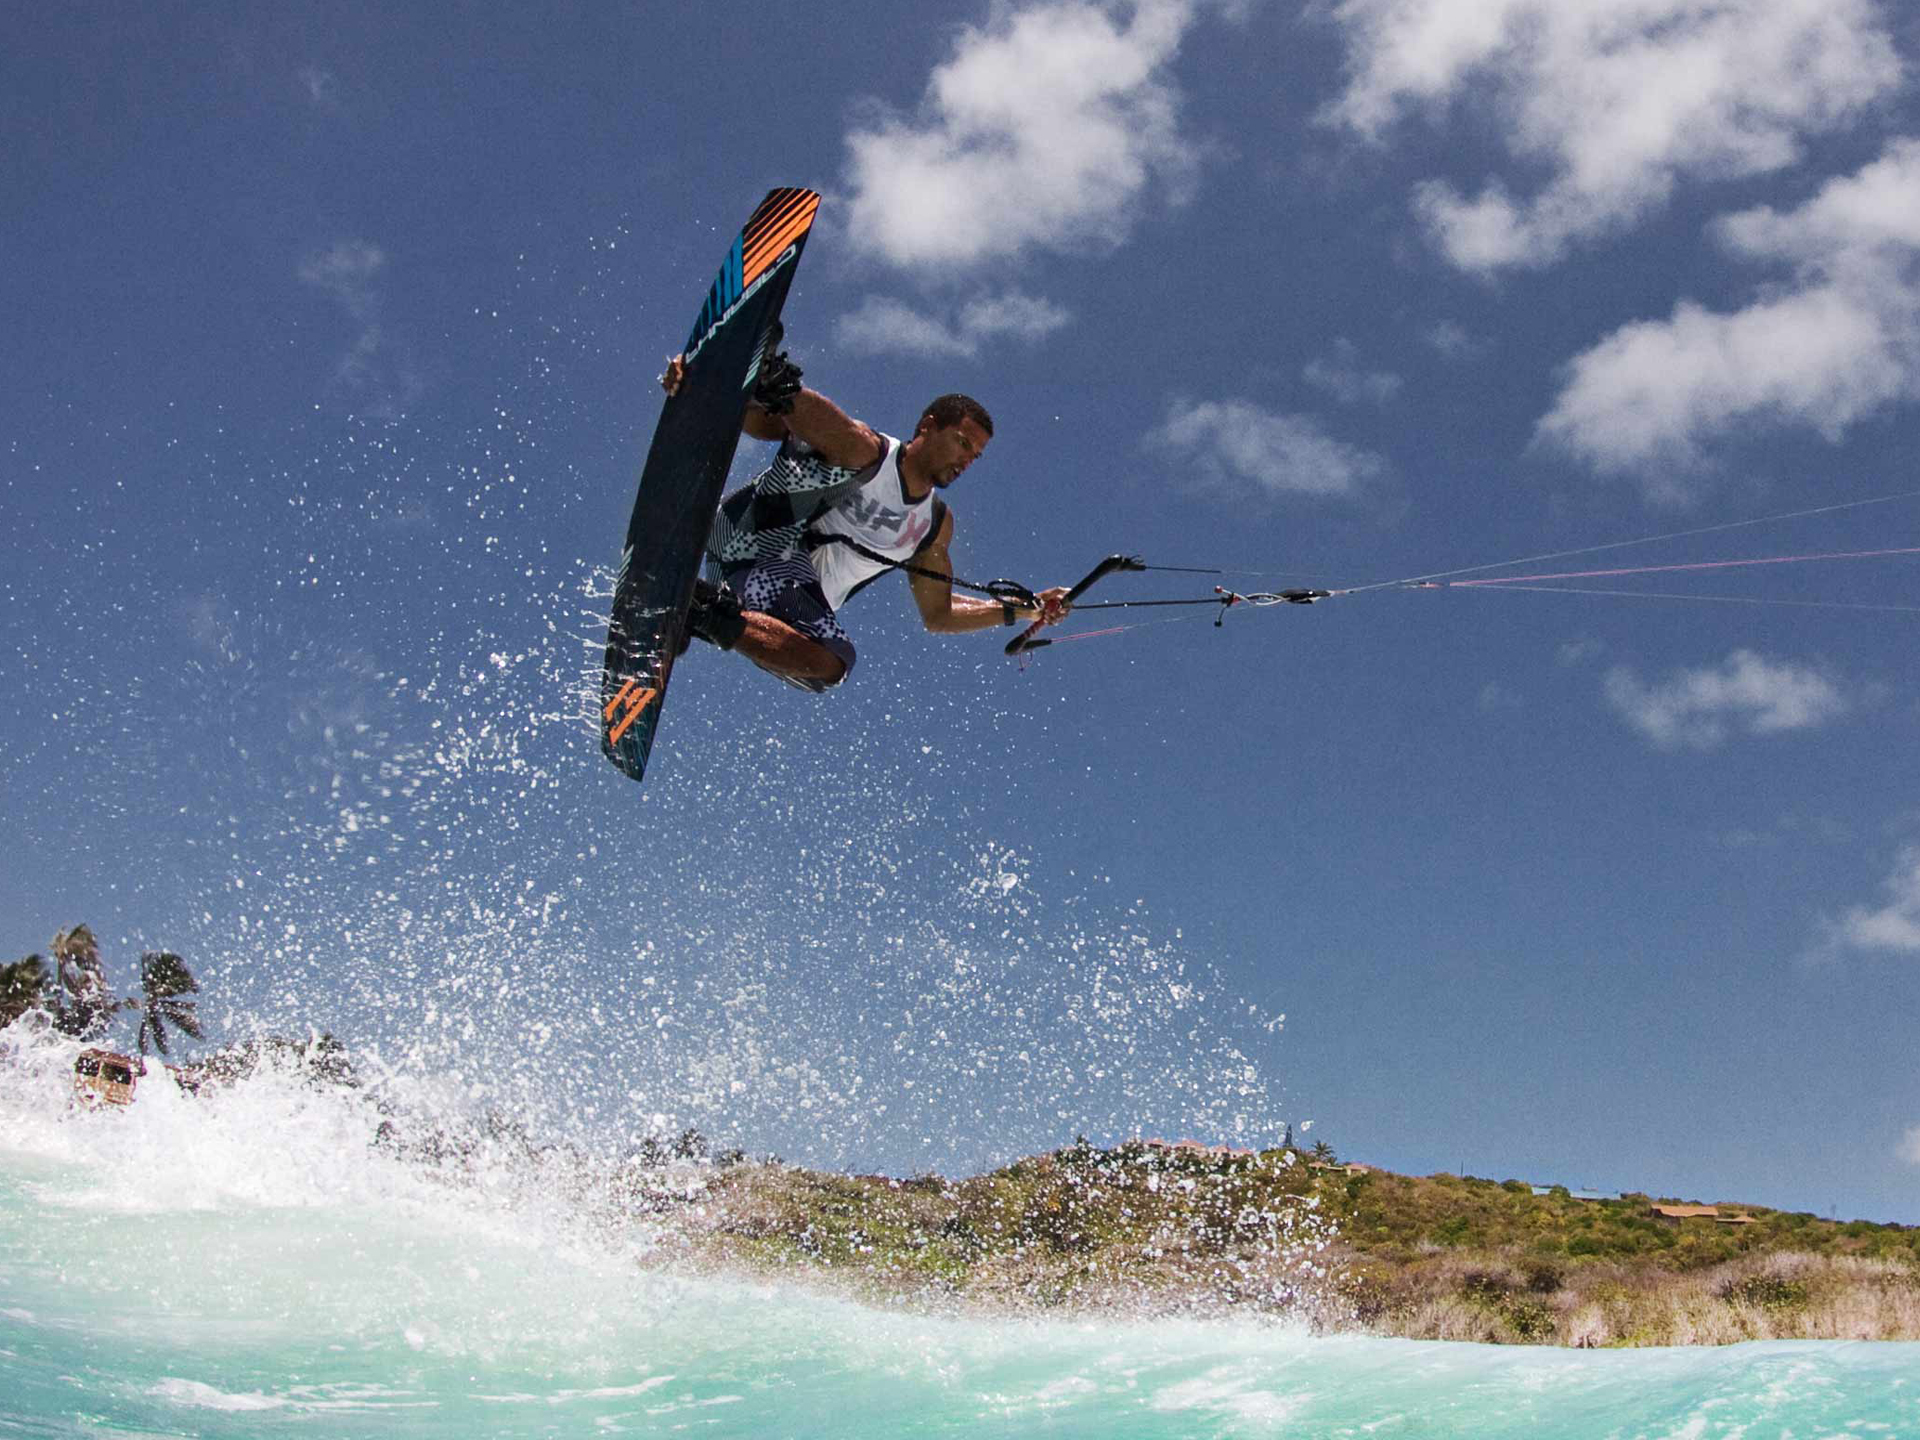 kitesurf wallpaper image - Andre Phillip with a nice grab over the surf - in resolution: Standard 4:3 1920 X 1440